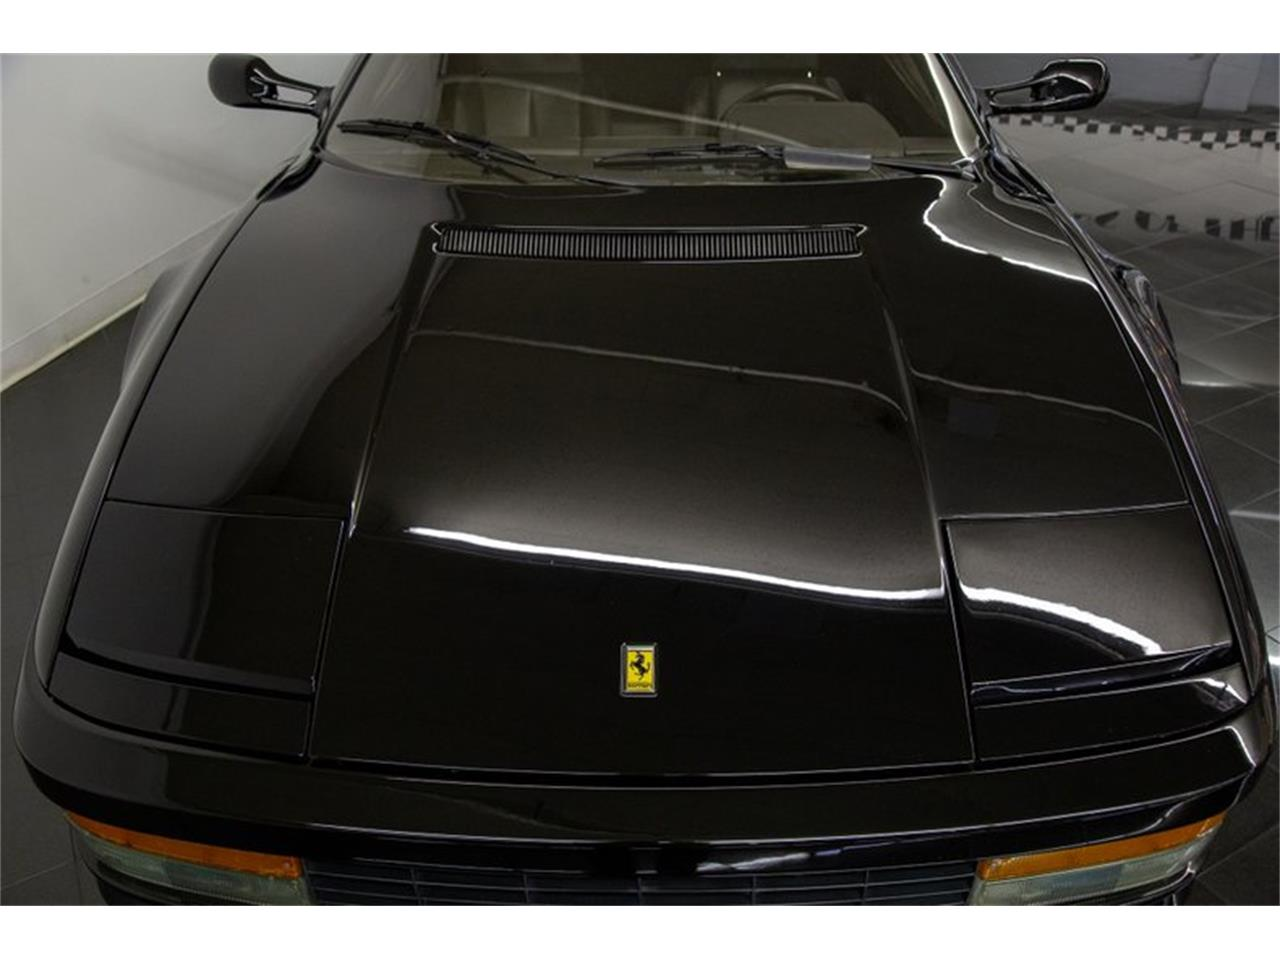 1988 Ferrari Testarossa (CC-1331812) for sale in St. Louis, Missouri